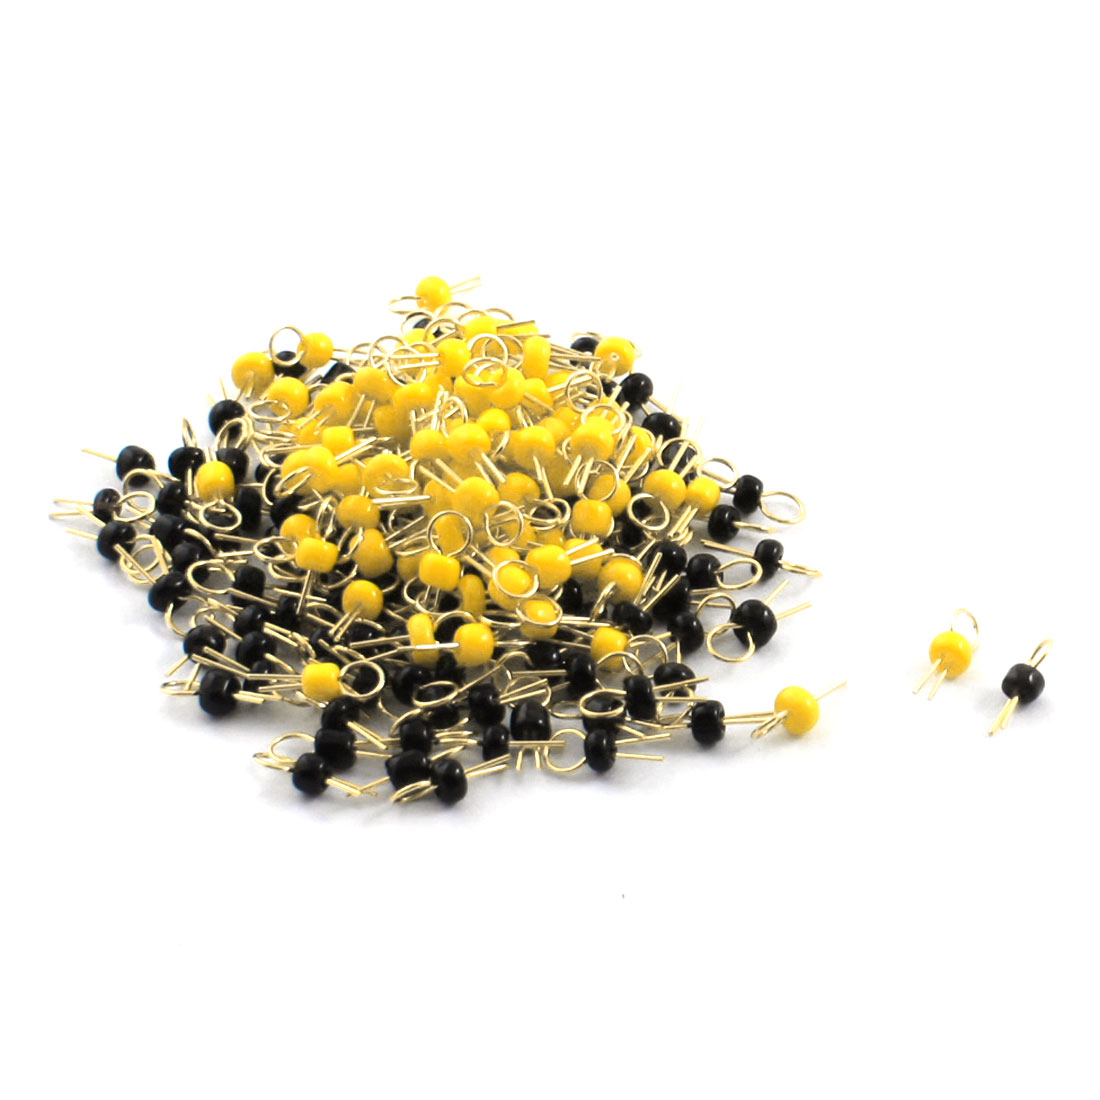 200Pcs Black + Yellow Ceramic Bead 3.2mm Head Dia Gold Tone Copper PCB Test Pin Terminals